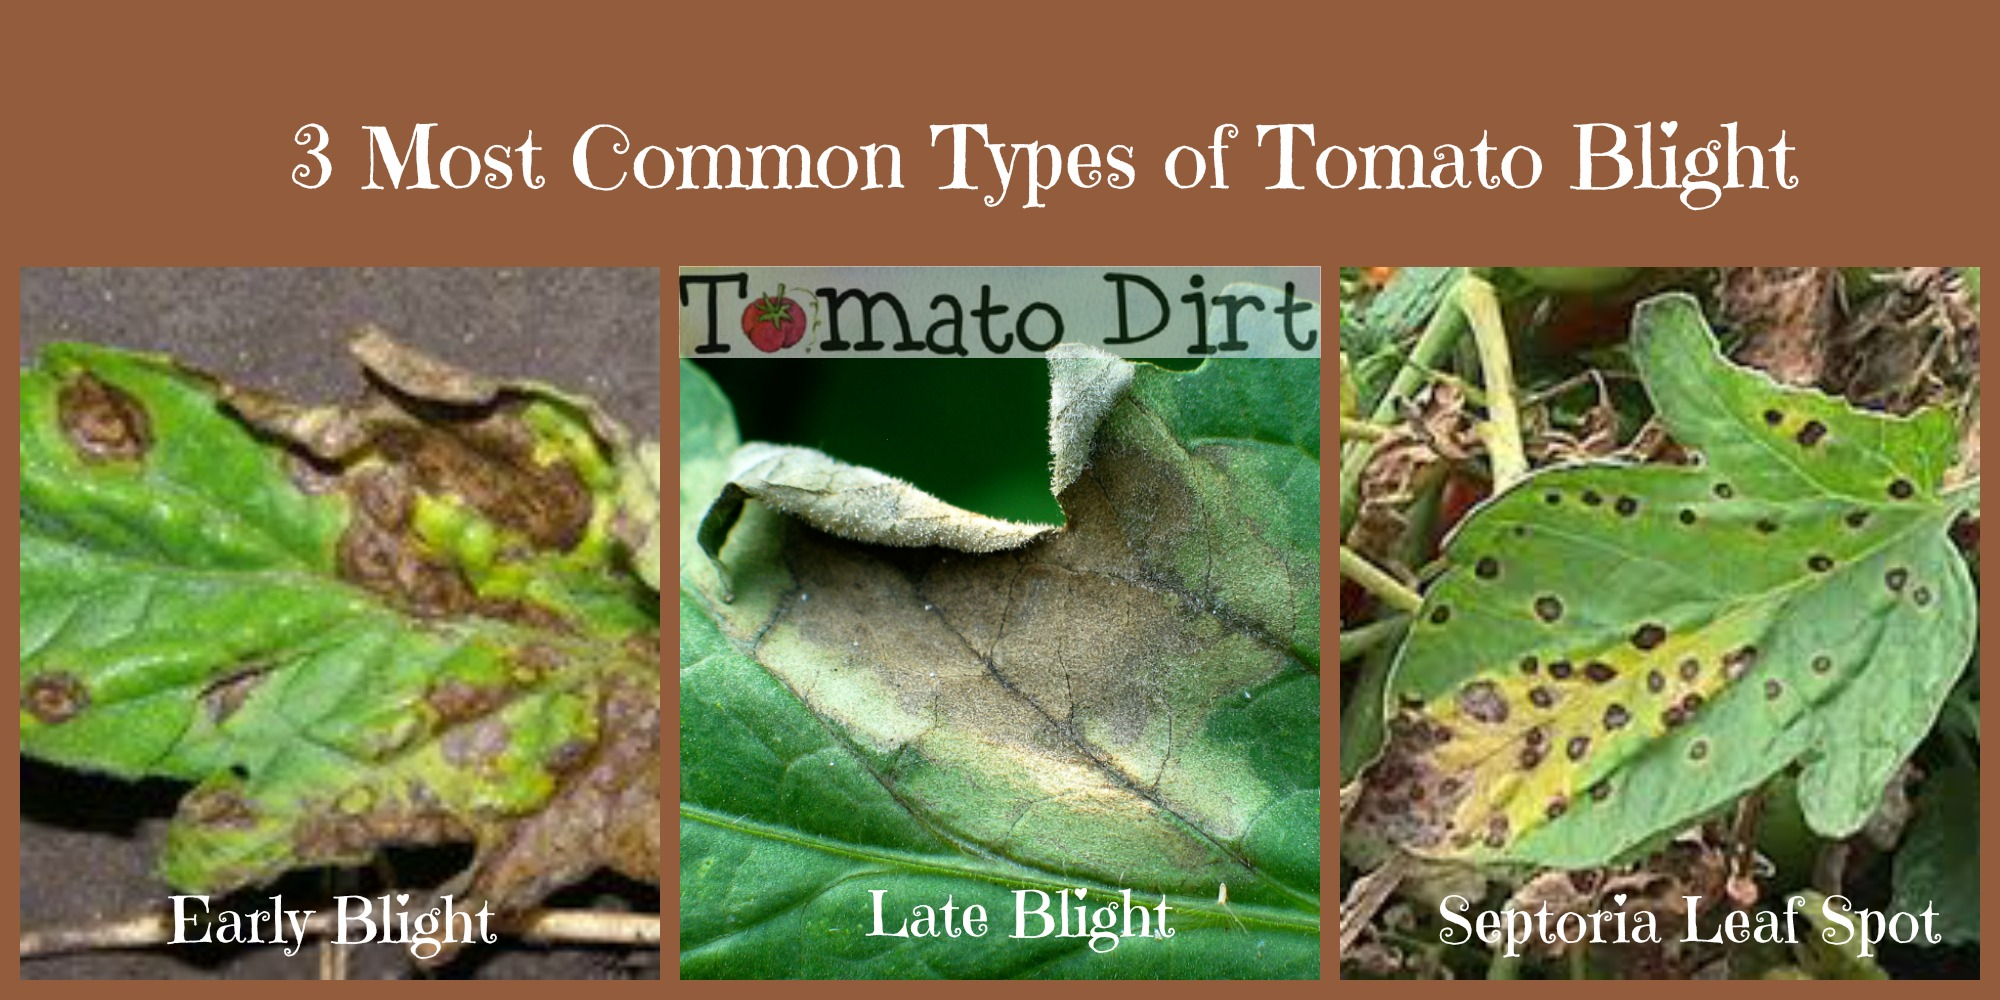 Different kinds of tomato blight and how to tell them apart